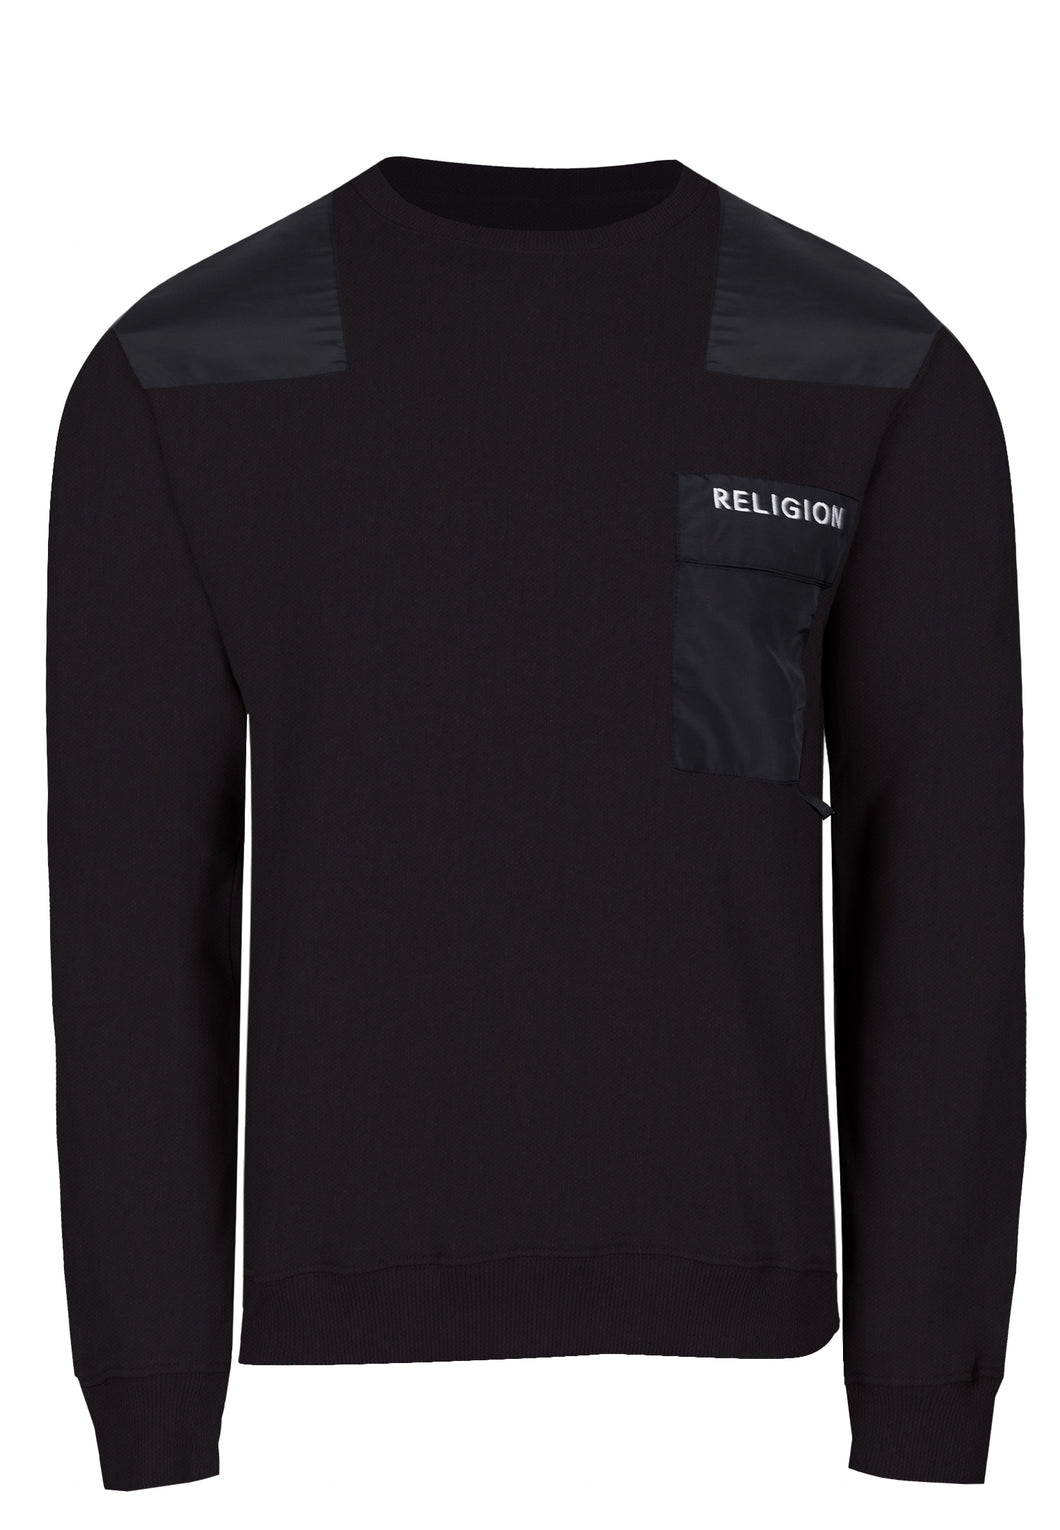 Religion Barrage Sweatshirt Black